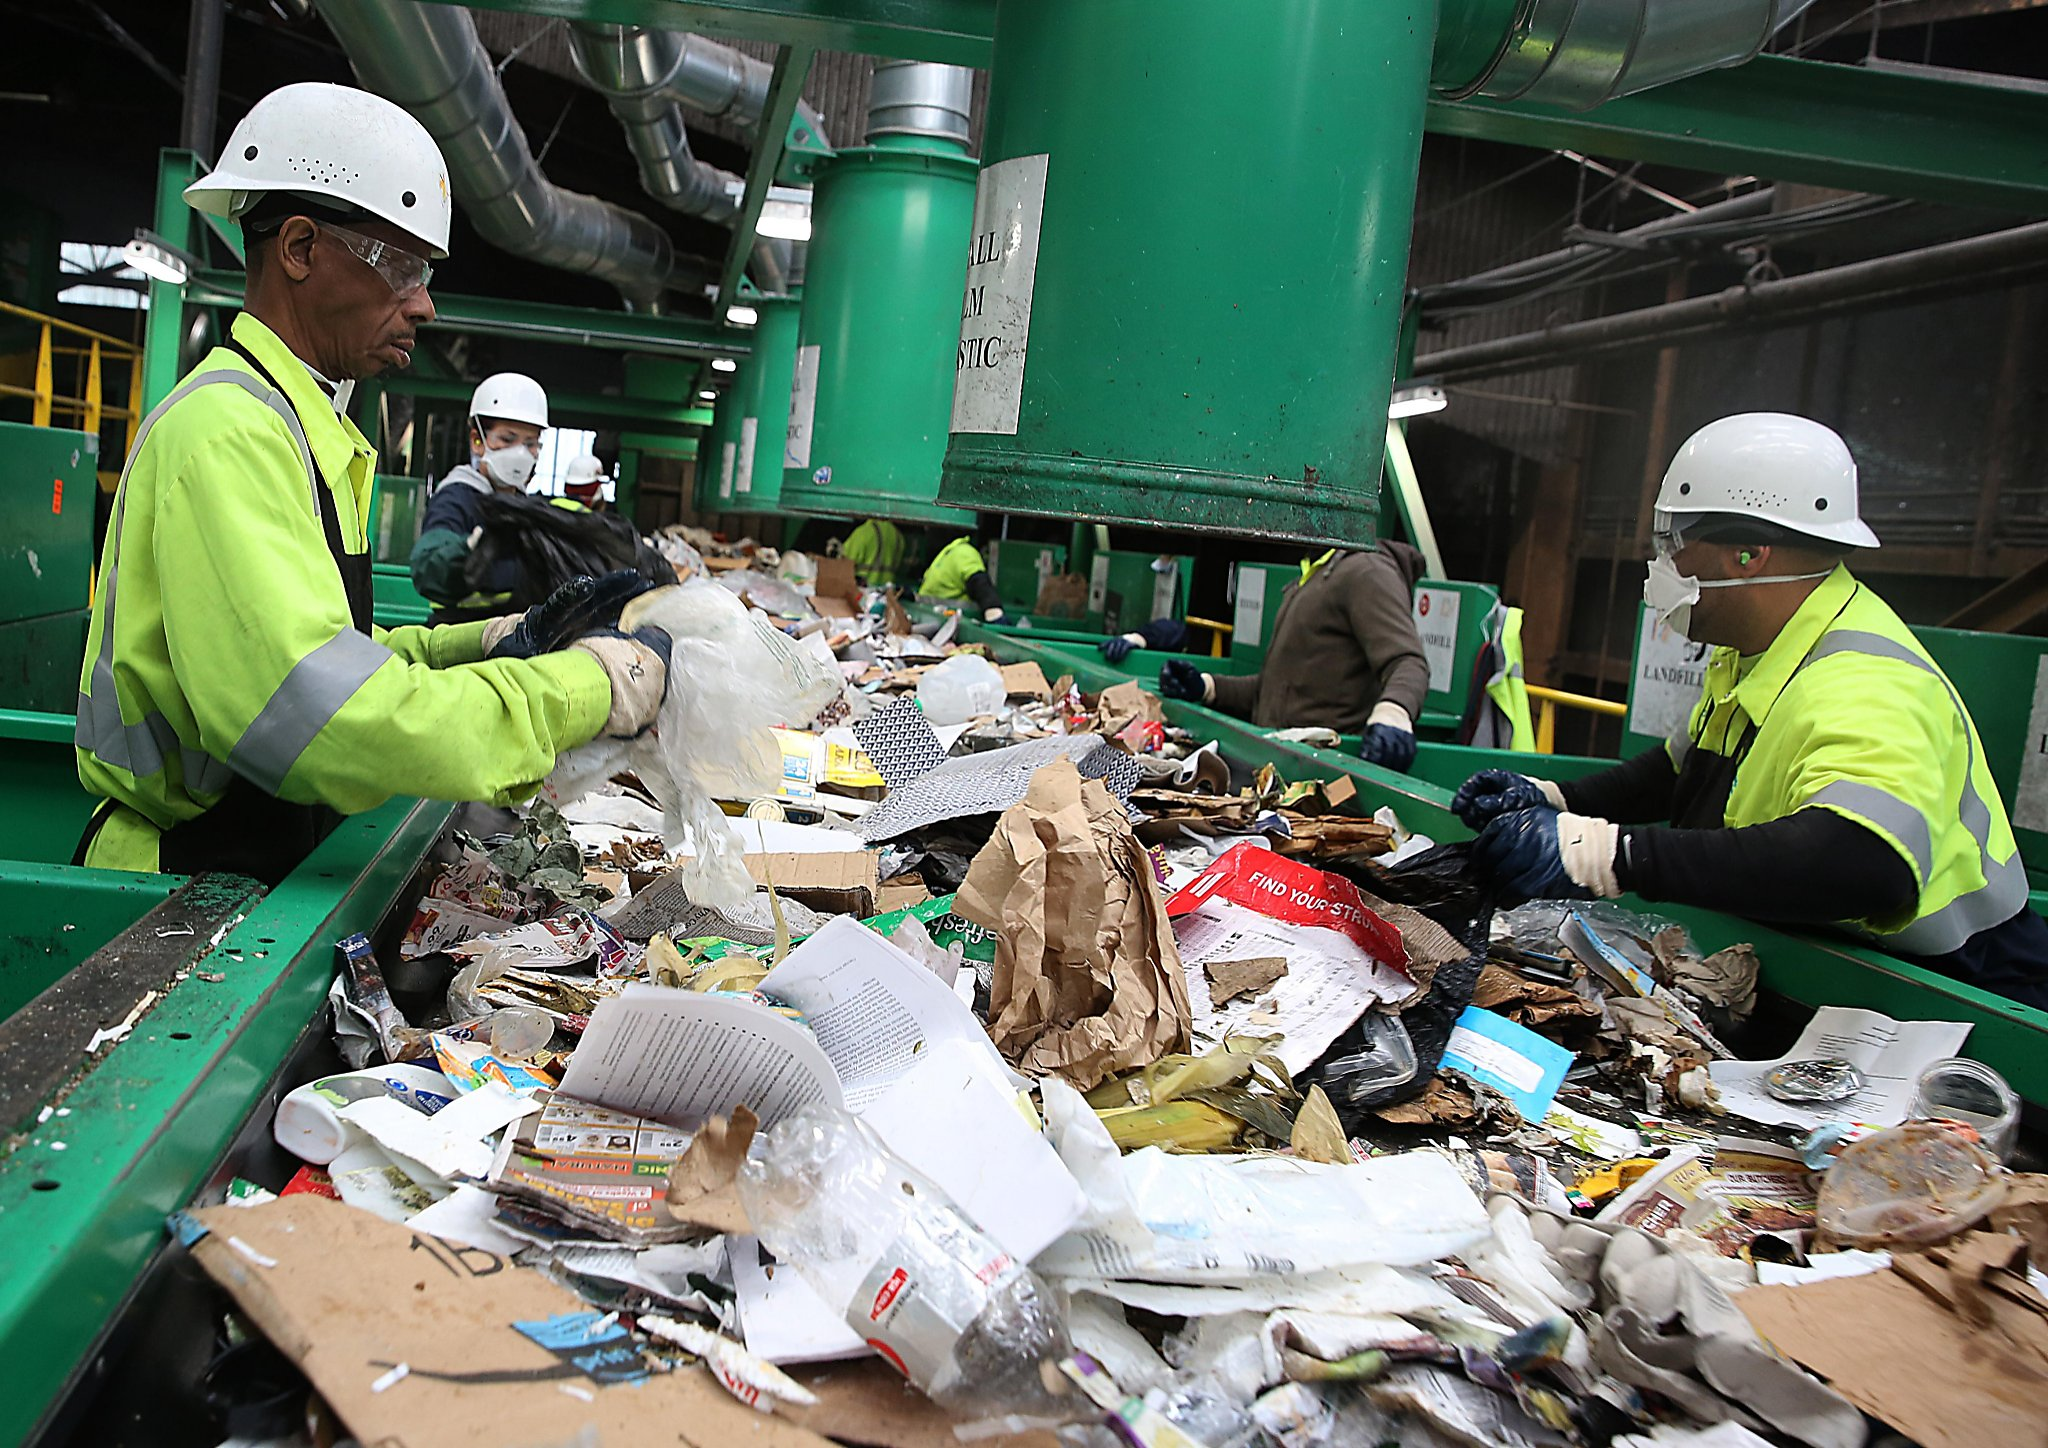 Blue apron how to recycle - Blame Amazon Effect For Proposed Bump In S F Garbage Bills San Francisco Chronicle